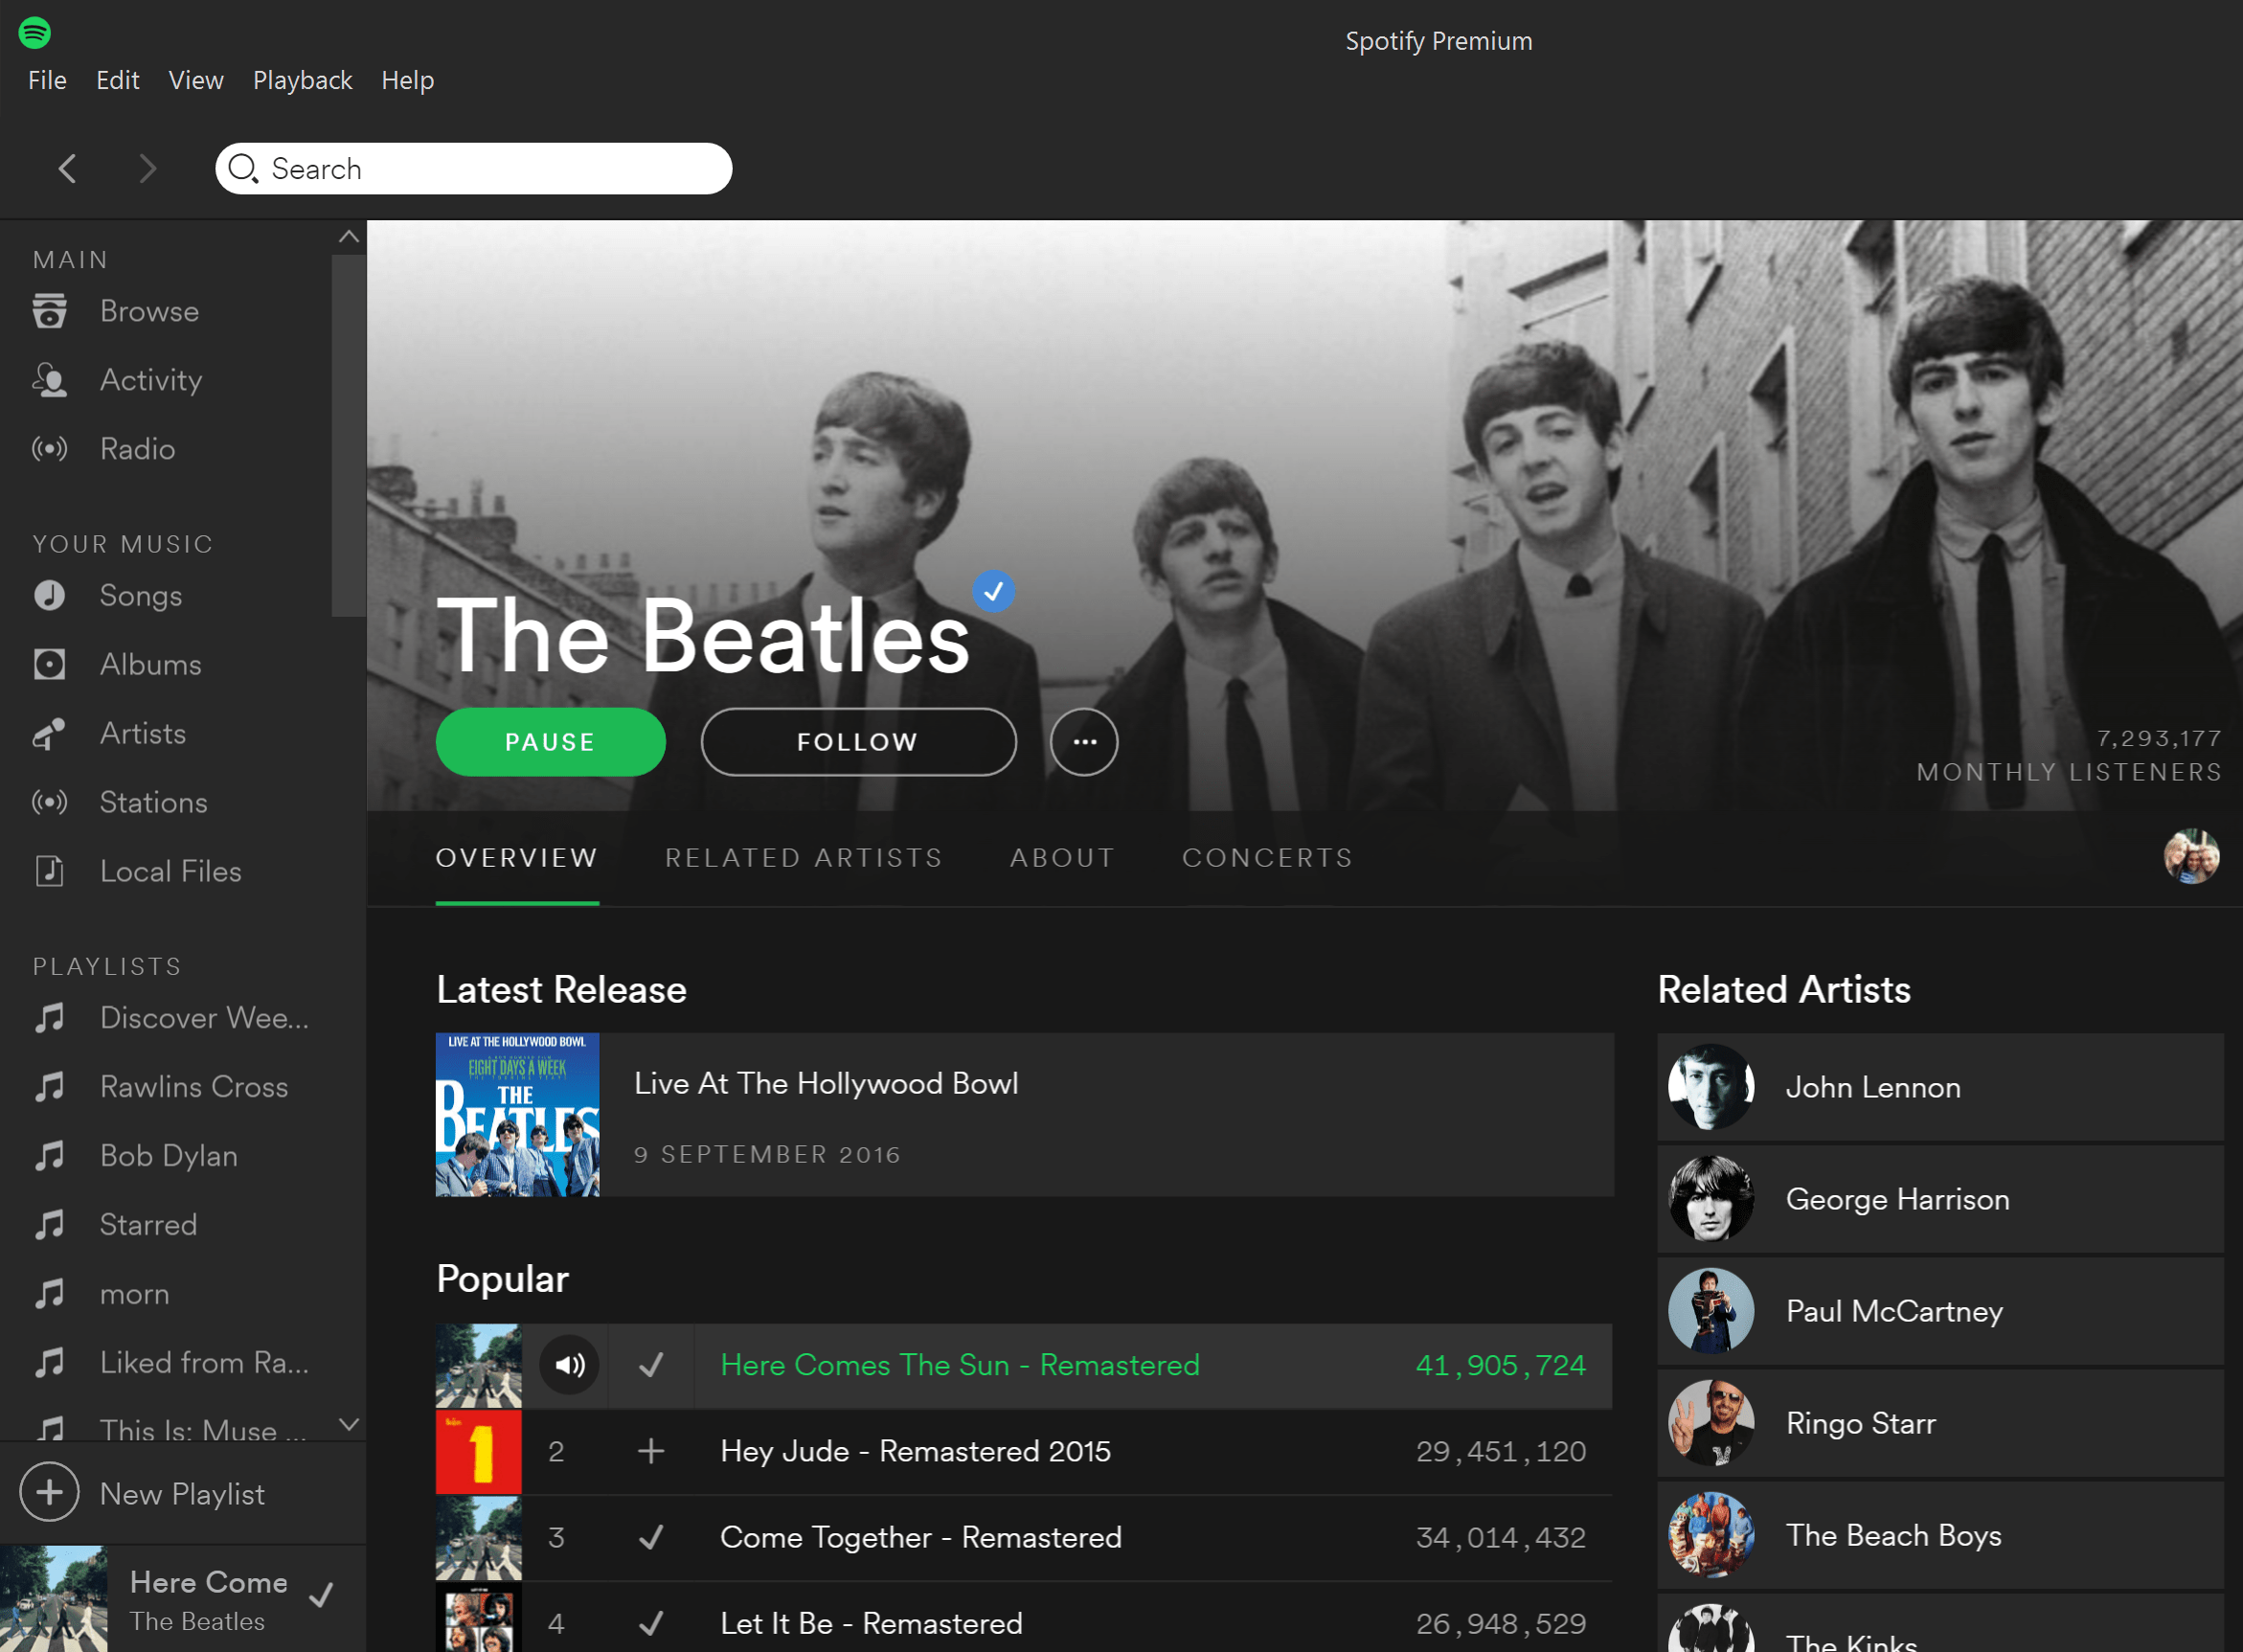 Spotify Delivering Ads Infested With Malware, Say Multiple Users